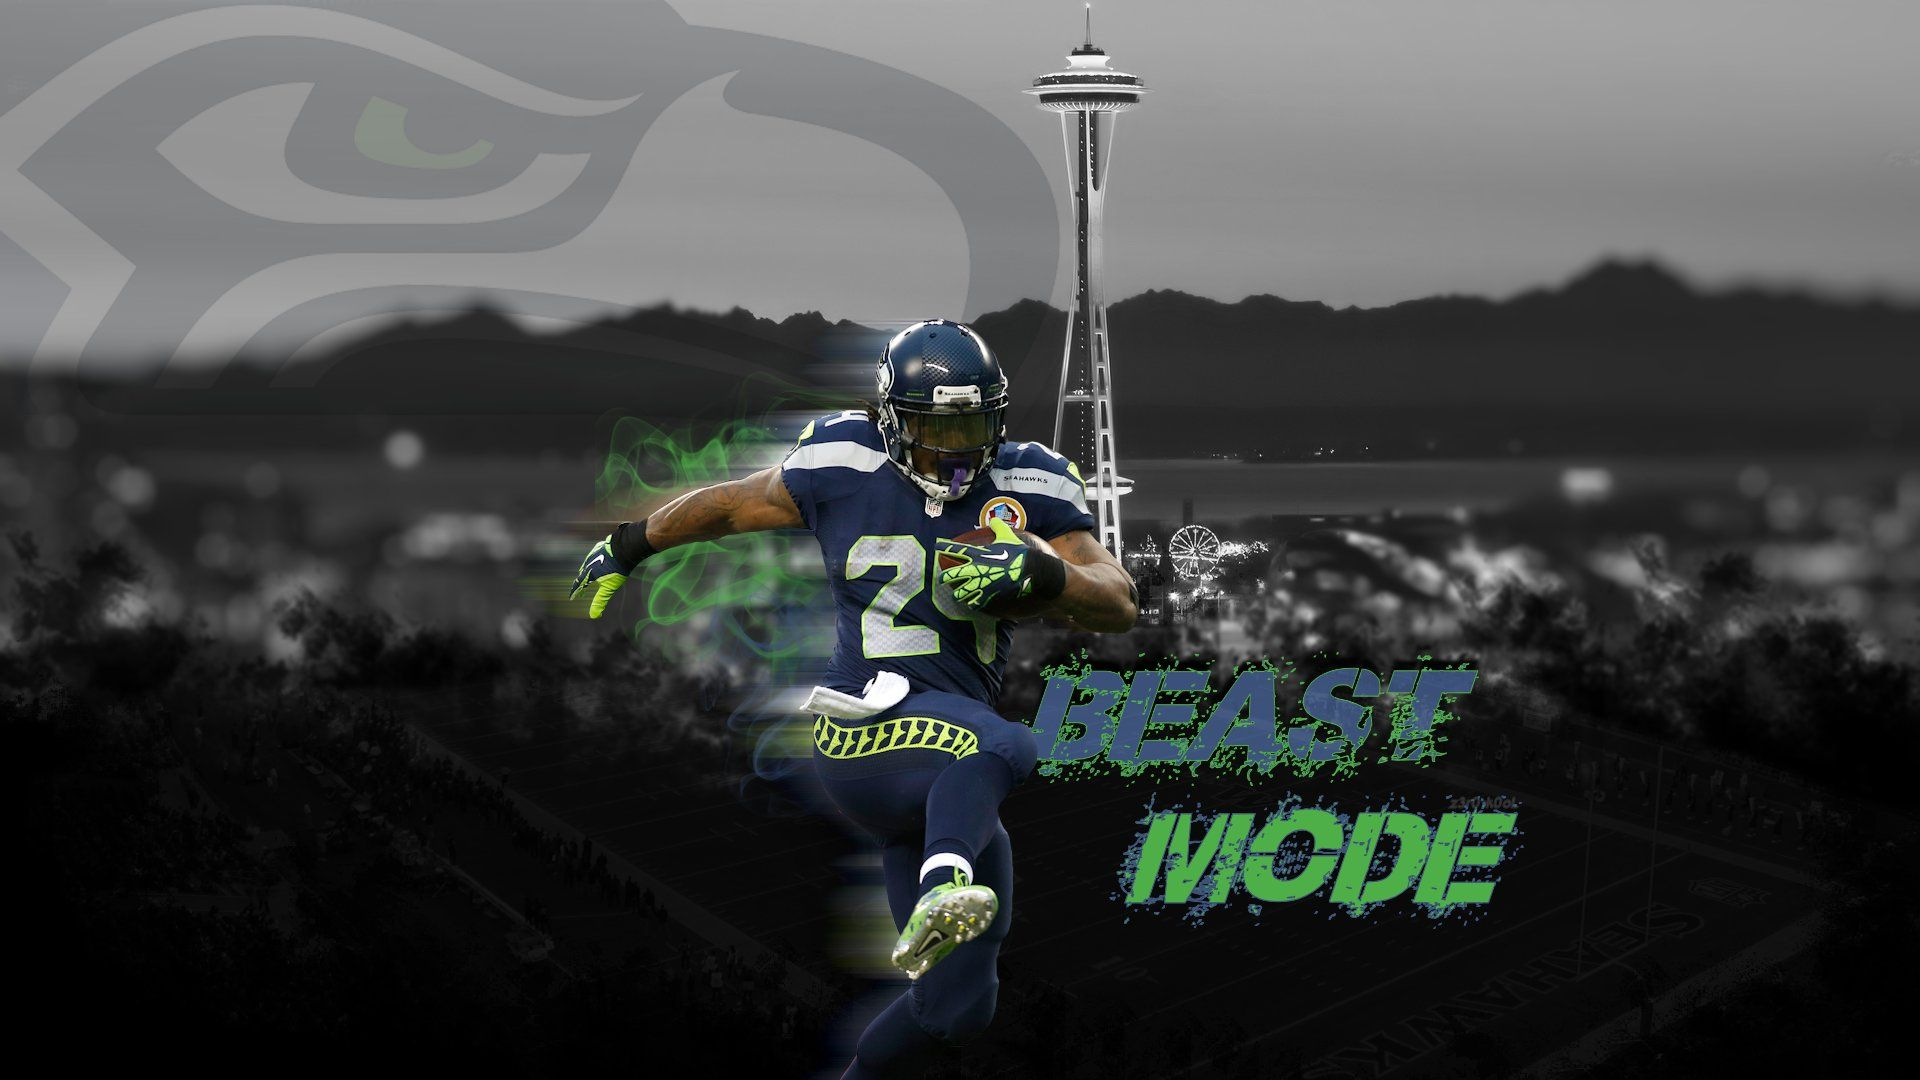 Seahawks Laptop Wallpapers - Top Free